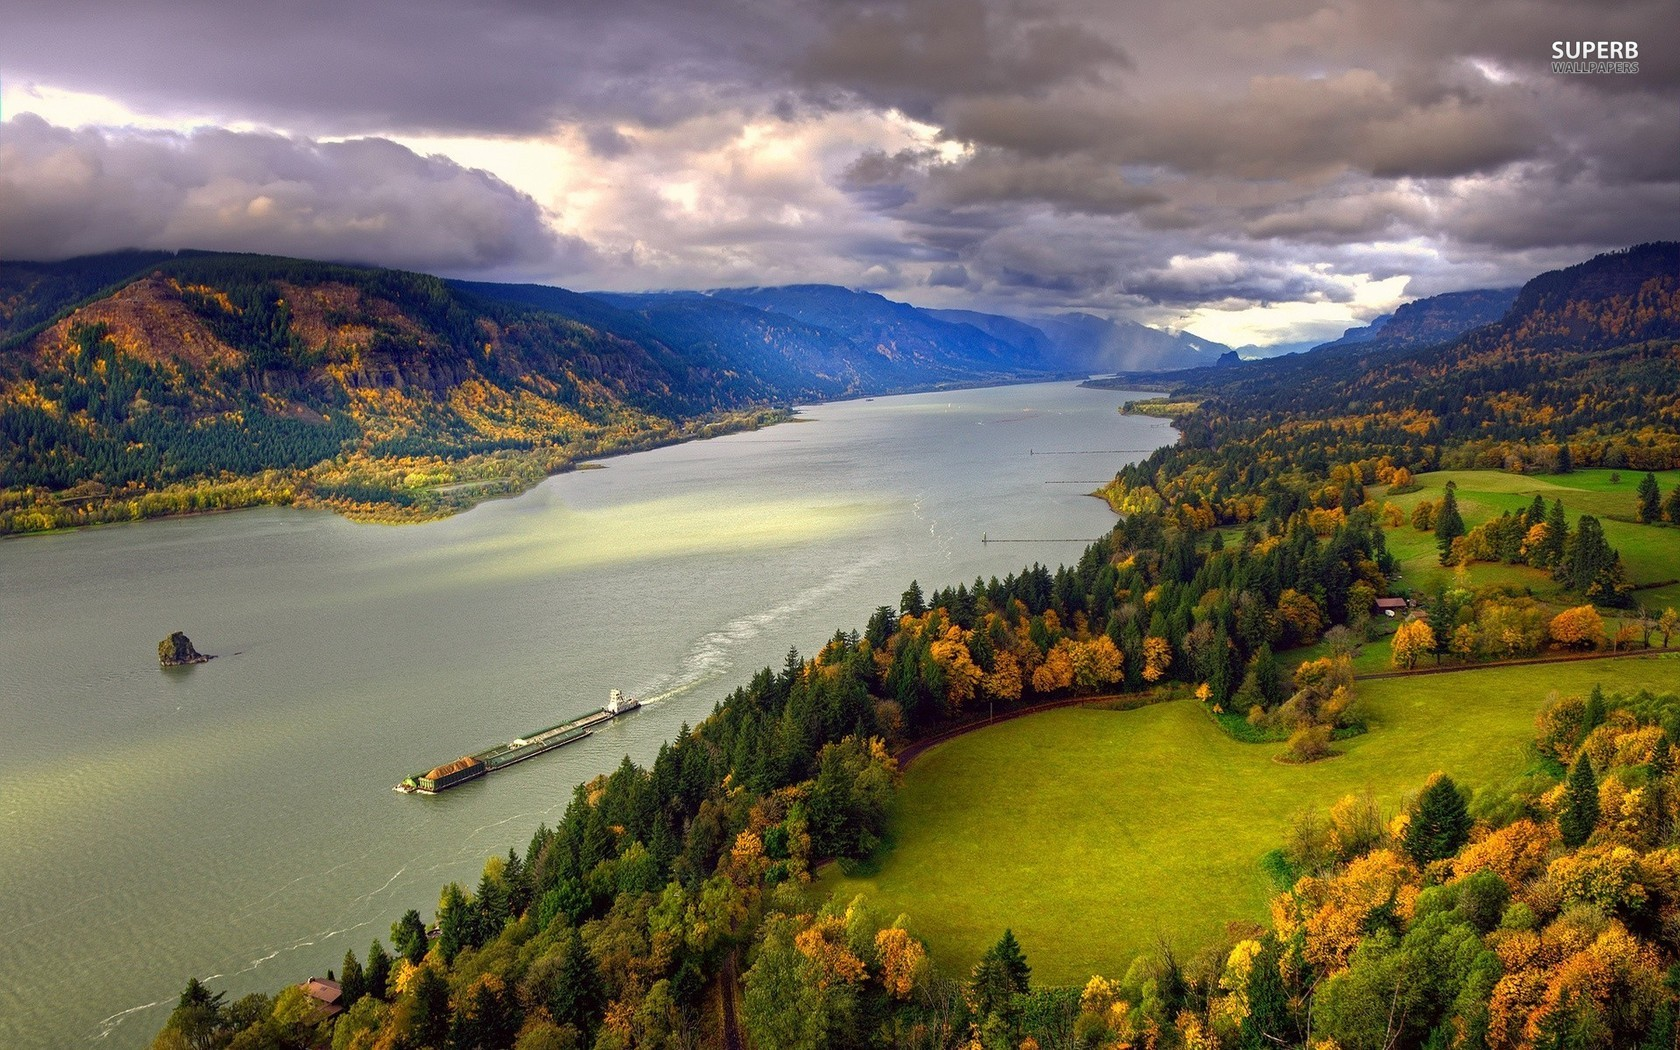 Columbia River wallpaper 1680x1050